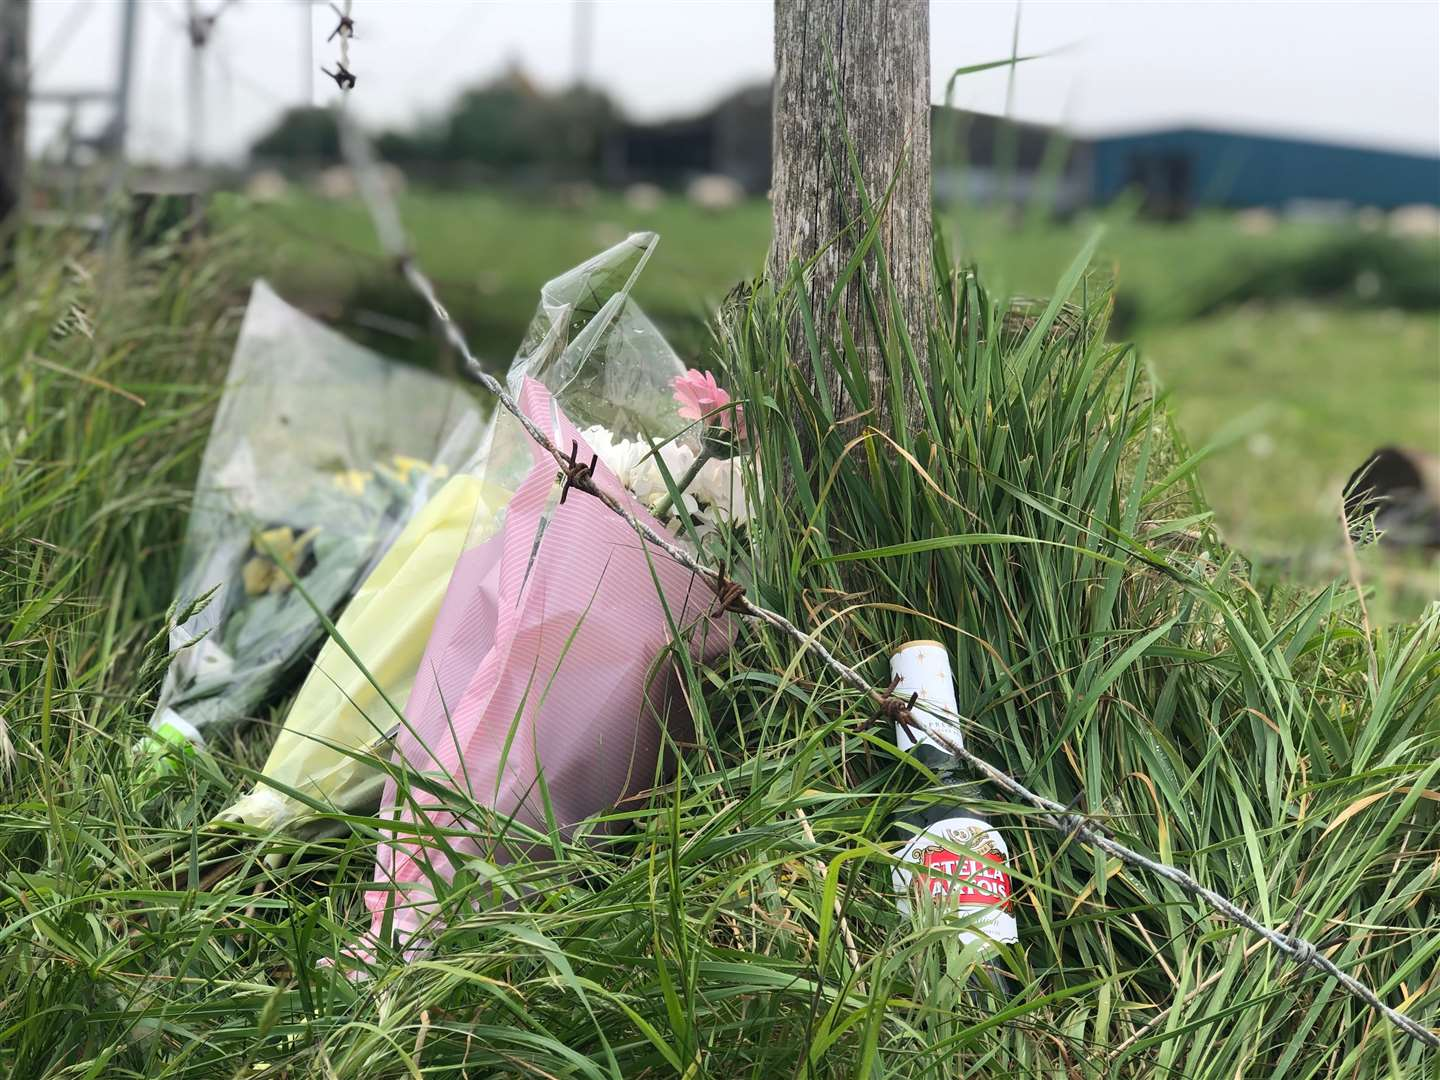 A Stella Artois bottle has been left at the crash scene as a tribute. Picture: Molly Mileham-Chappell (10723272)